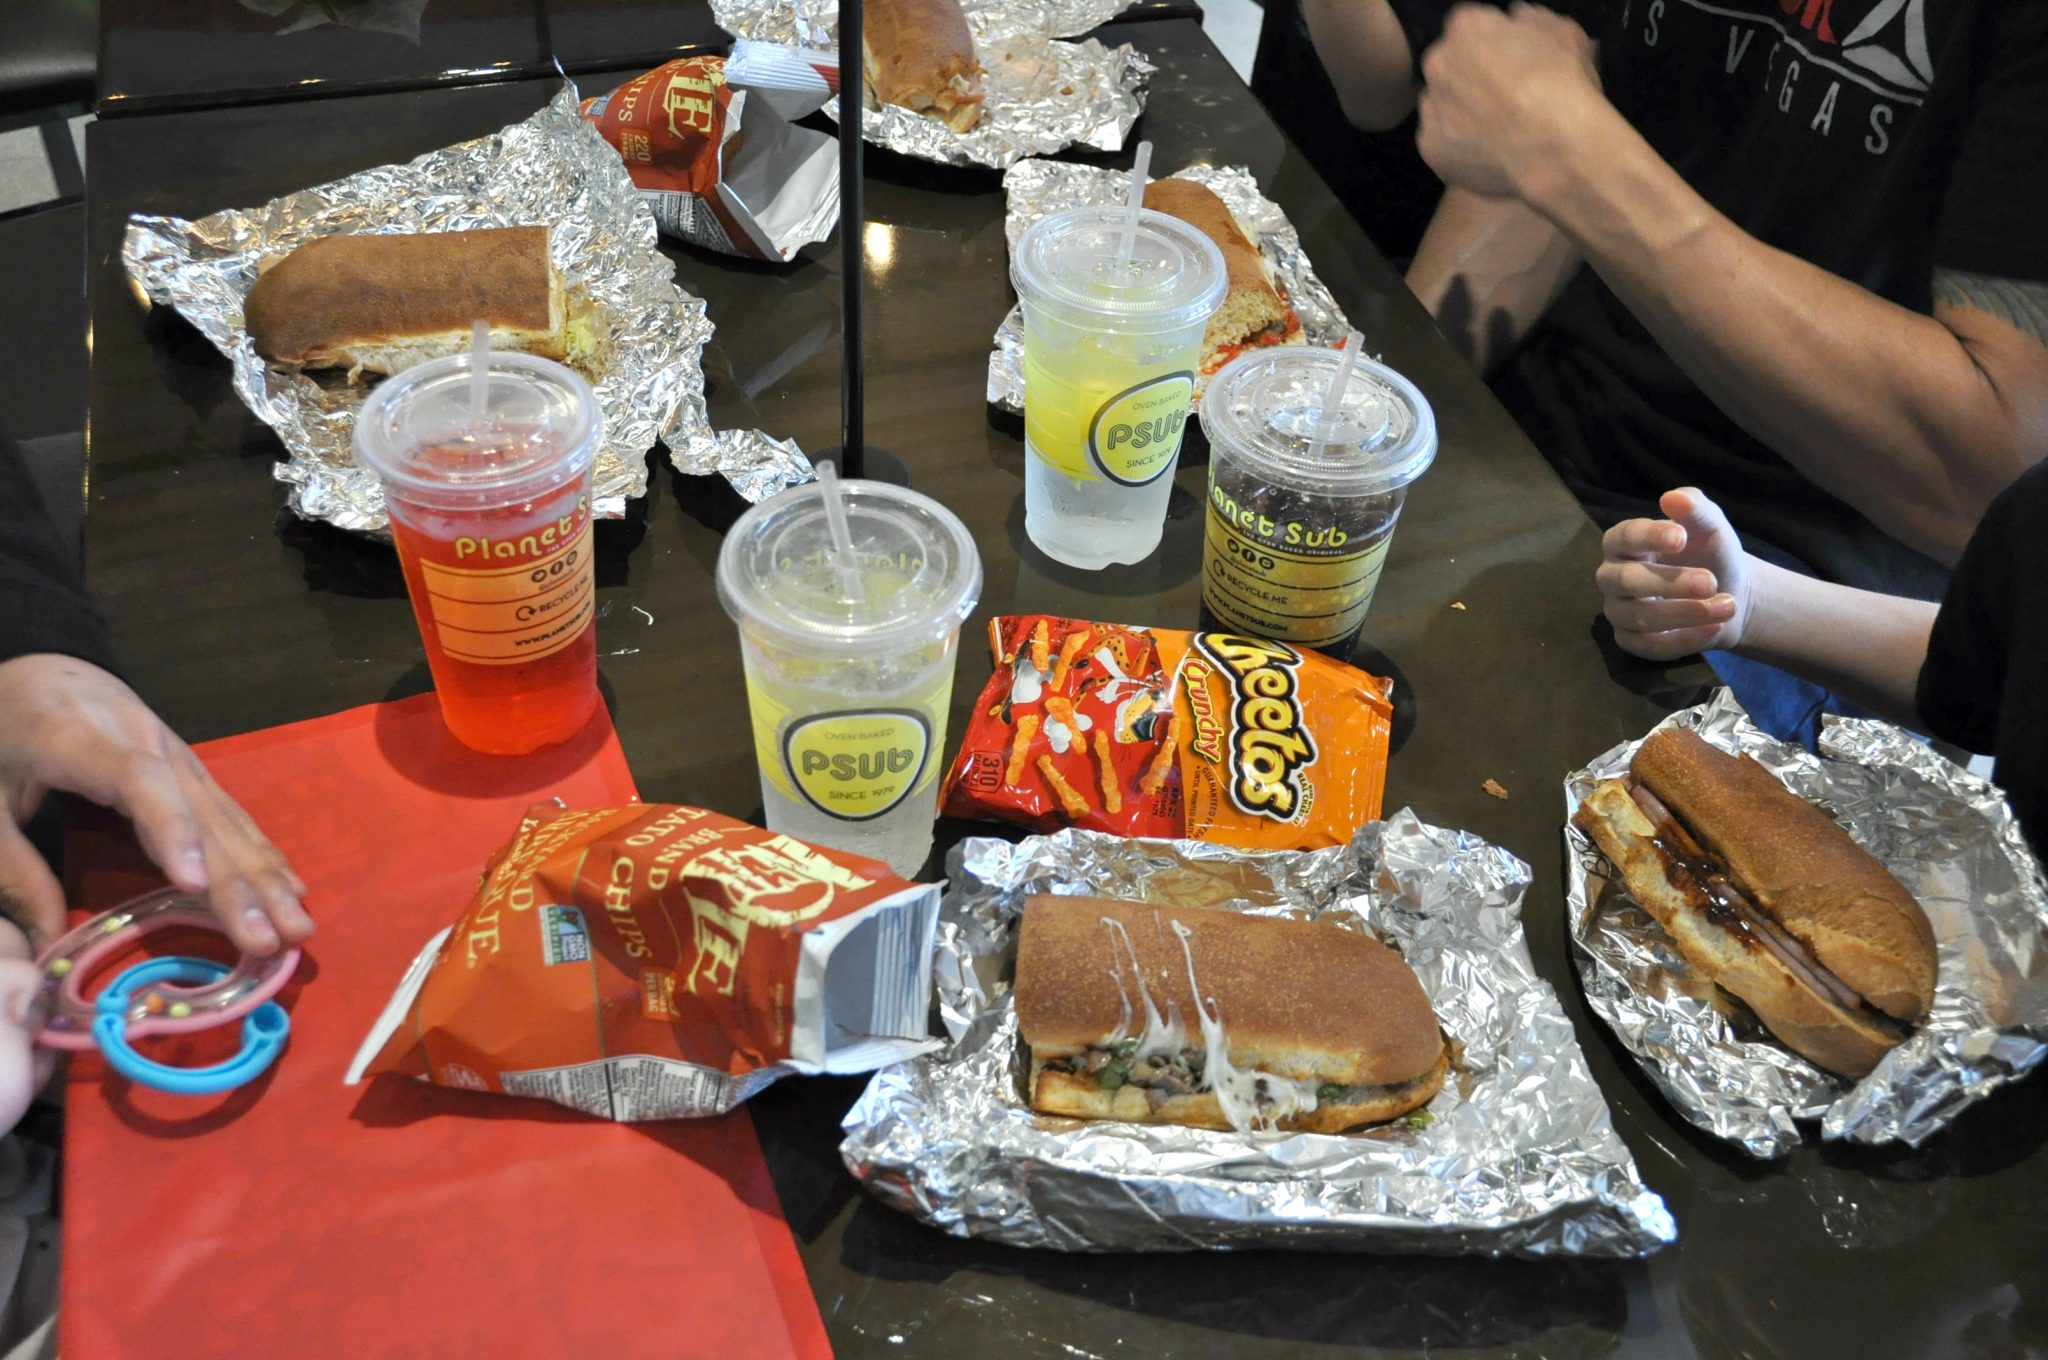 Lunch at planet sub